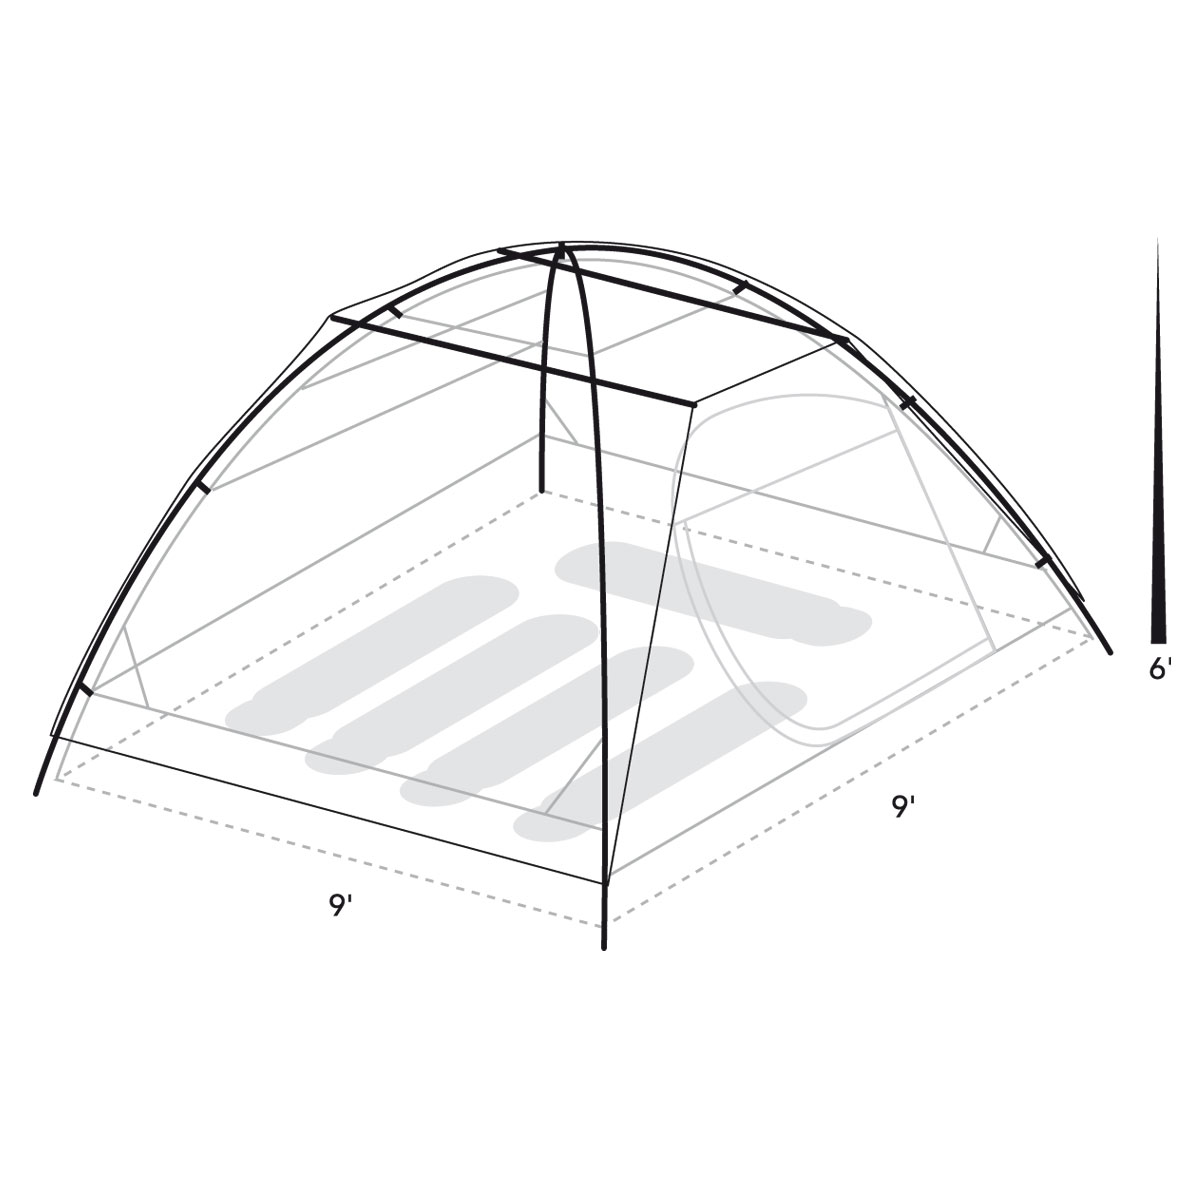 Find in store  sc 1 st  Tents | Eureka! - Johnson Outdoors & Tetragon HD 5 Person Tent | Eureka!